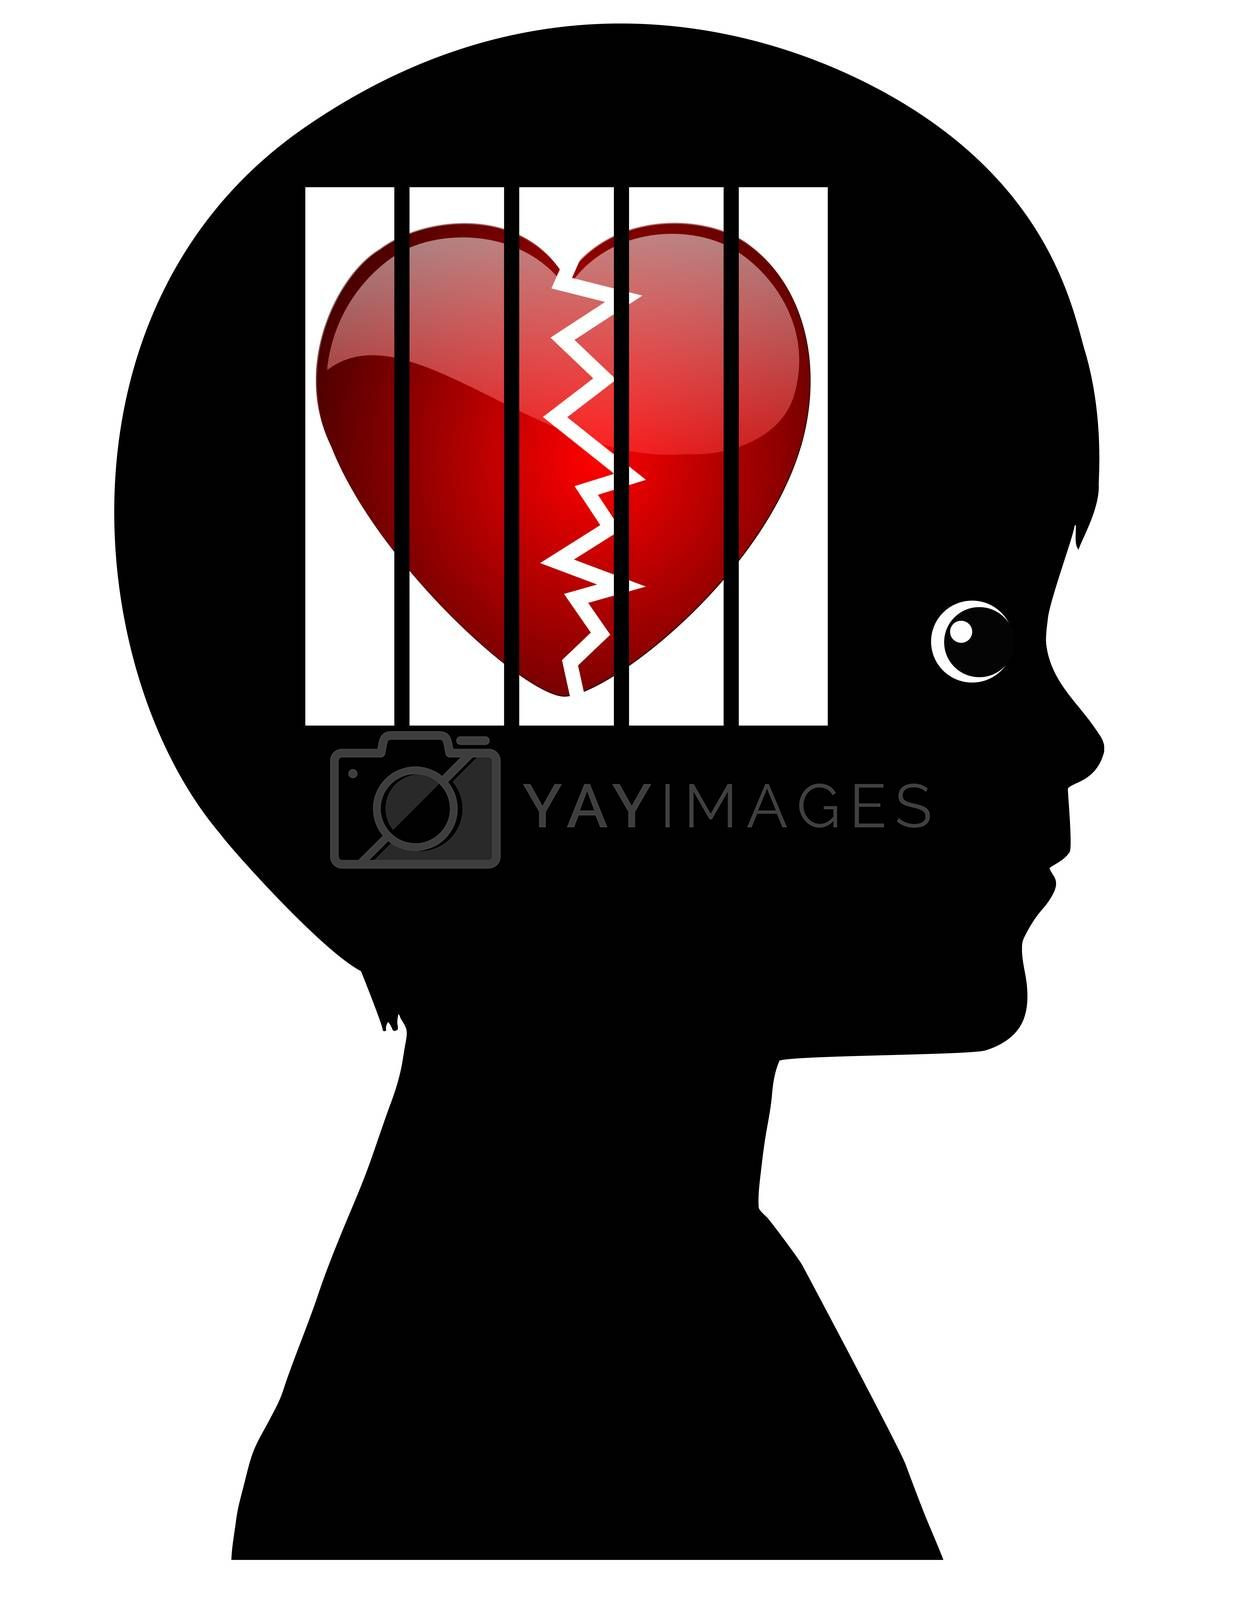 Concept sign of kid with emotional disability caused by abuse, divorce or any traumatic experience